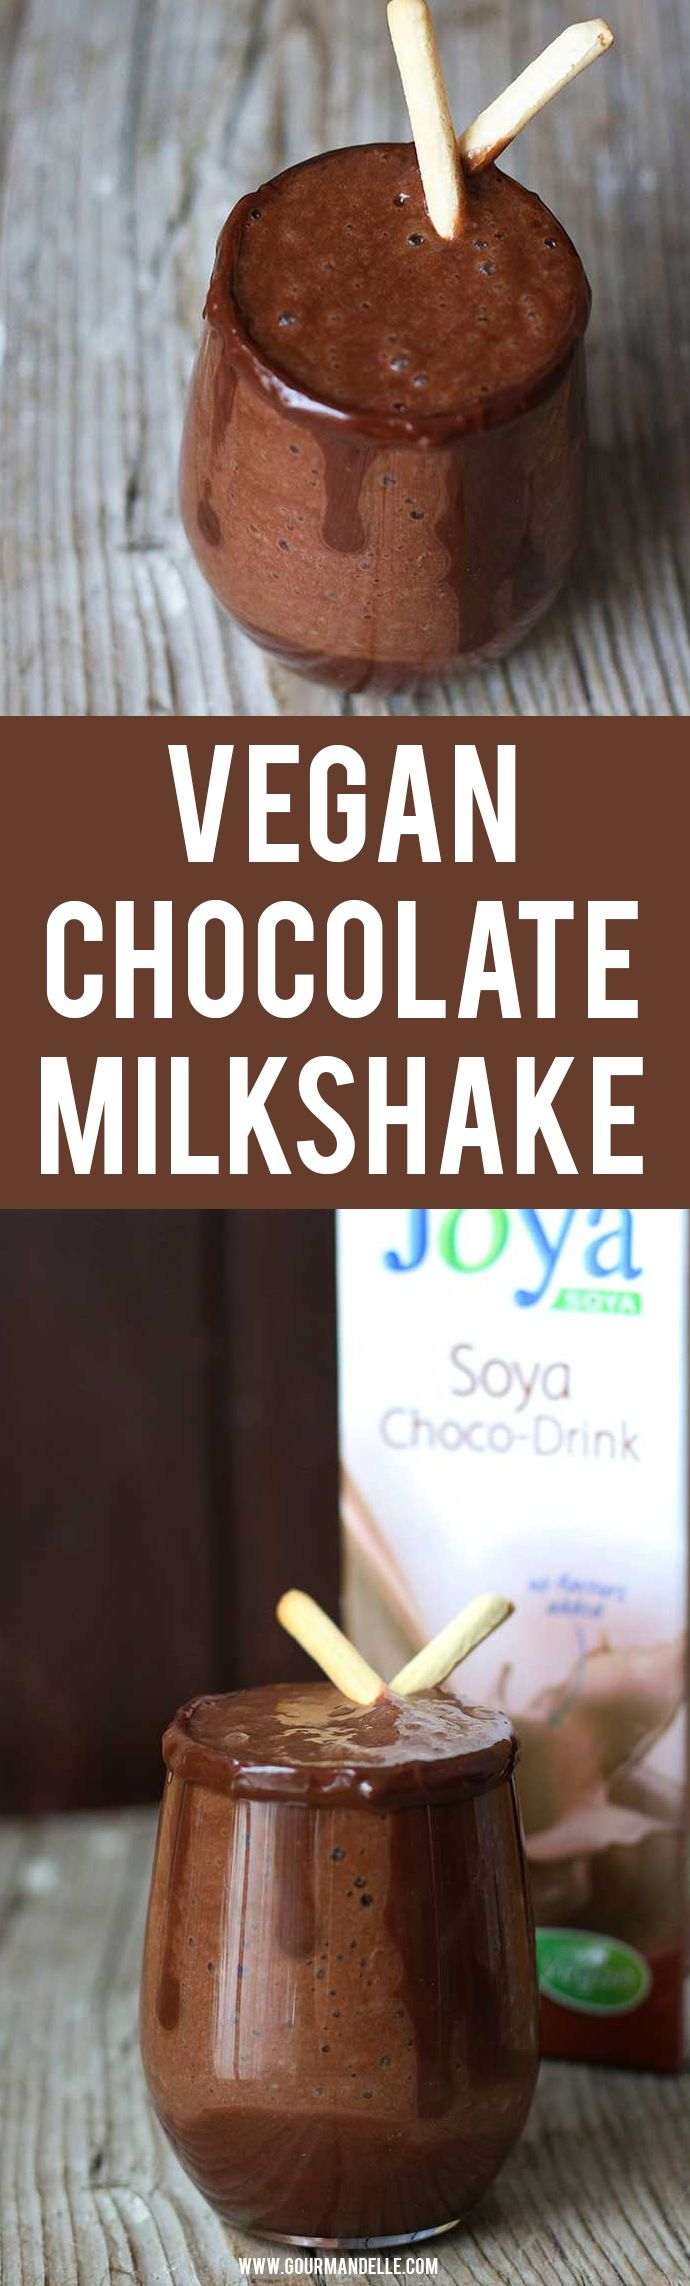 #Vegan #Chocolate #Milkshake - Forget the unhealthy, sugary milkshakes and try this vegan chocolate milkshake recipe instead! It's healthy, ready in less than 5 minutes and can even be served for breakfast!  https://gourmandelle.com/vegan-chocolate-milkshake/